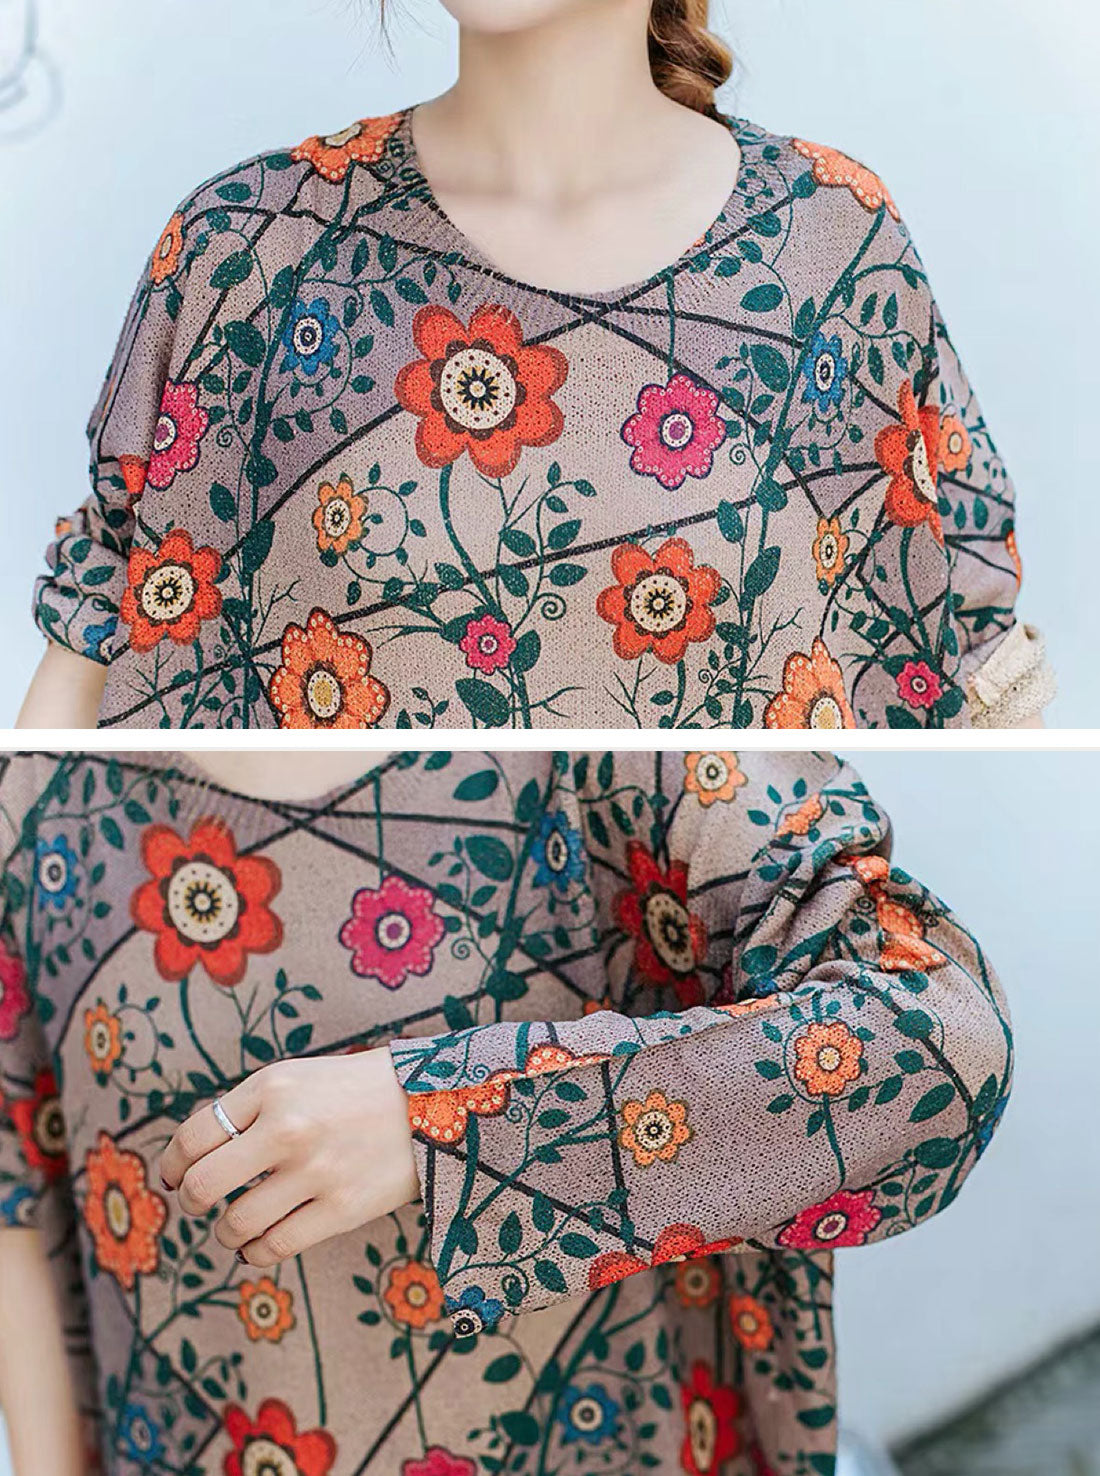 Flower Printed Knitted Sweater Dress Details